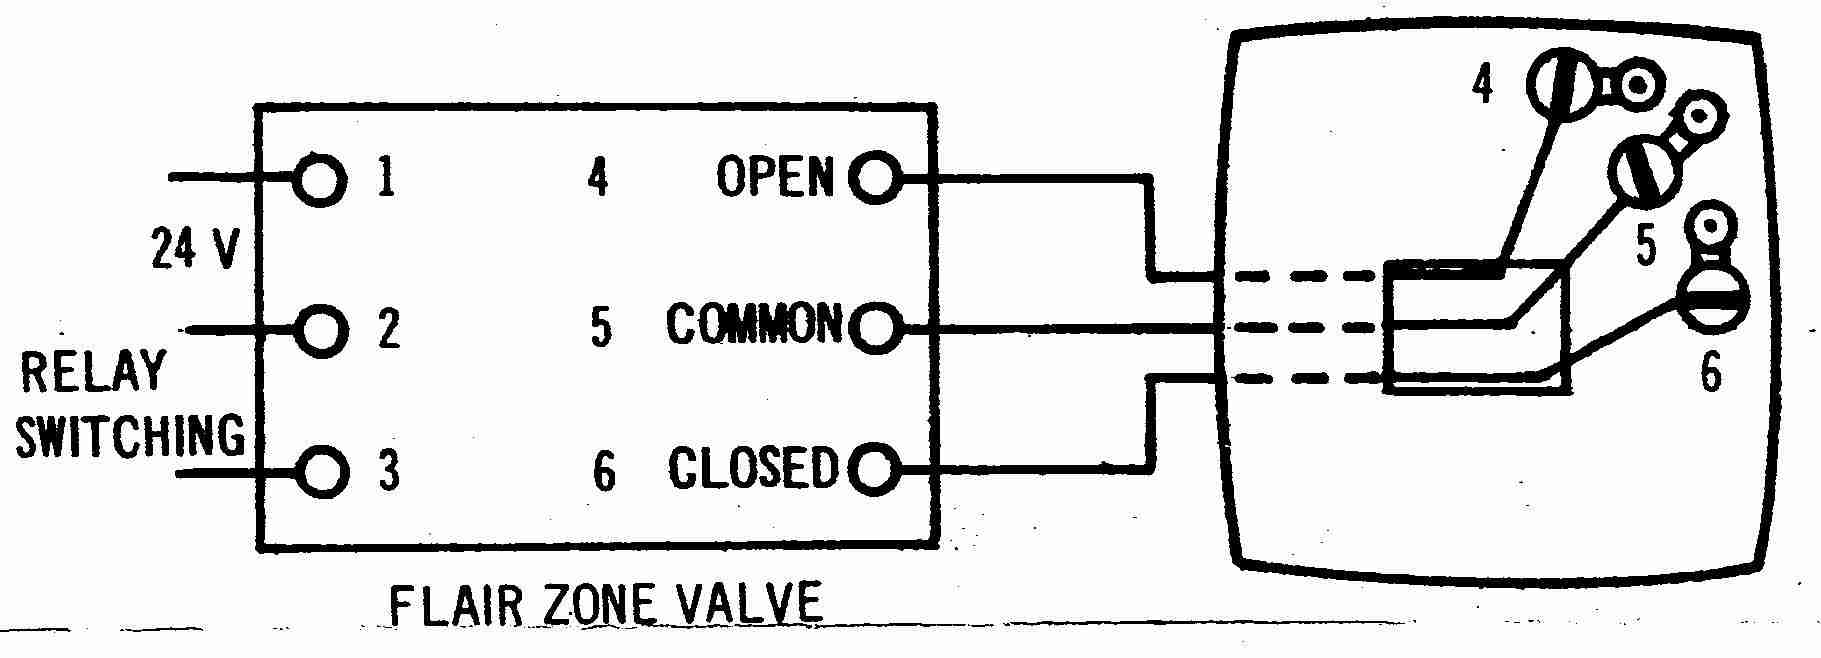 Flair3w_001_DJFc2 zone valve wiring installation & instructions guide to heating honeywell v8043 zone valve wiring diagram at reclaimingppi.co